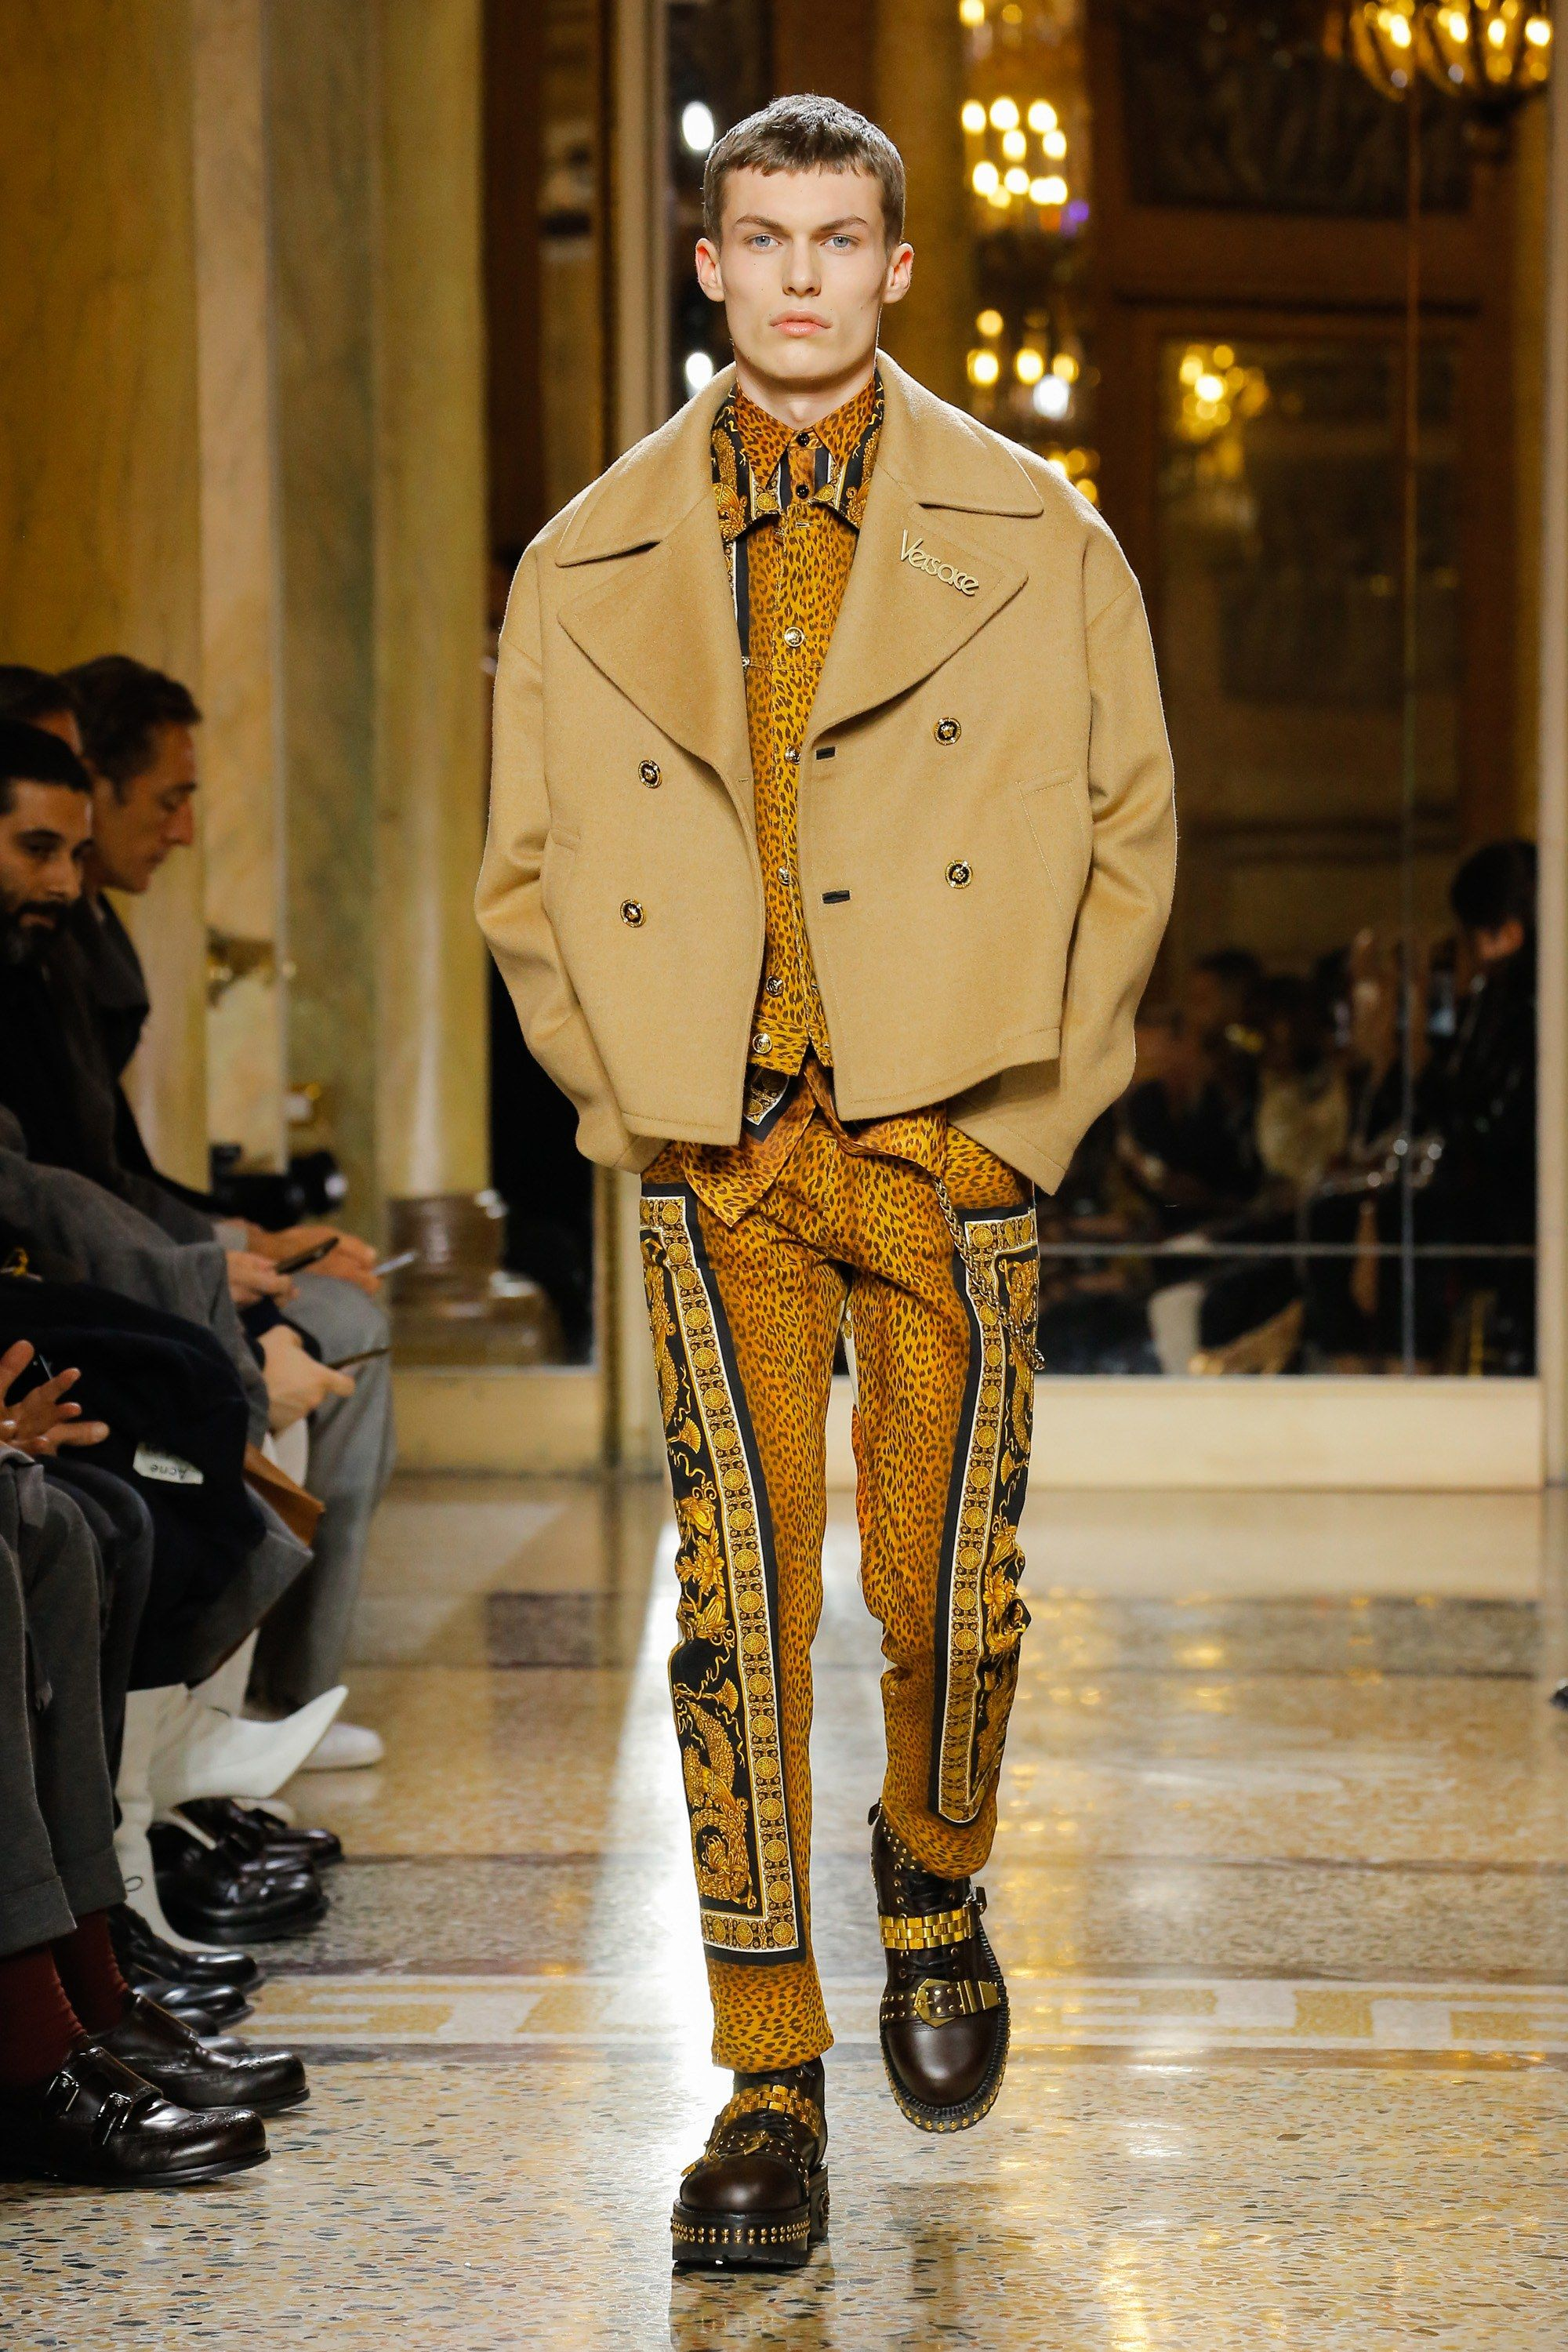 Versace Fall 2018 Menswear Fashion Show is part of Clothes Mens 2018 - The complete Versace Fall 2018 Menswear fashion show now on Vogue Runway